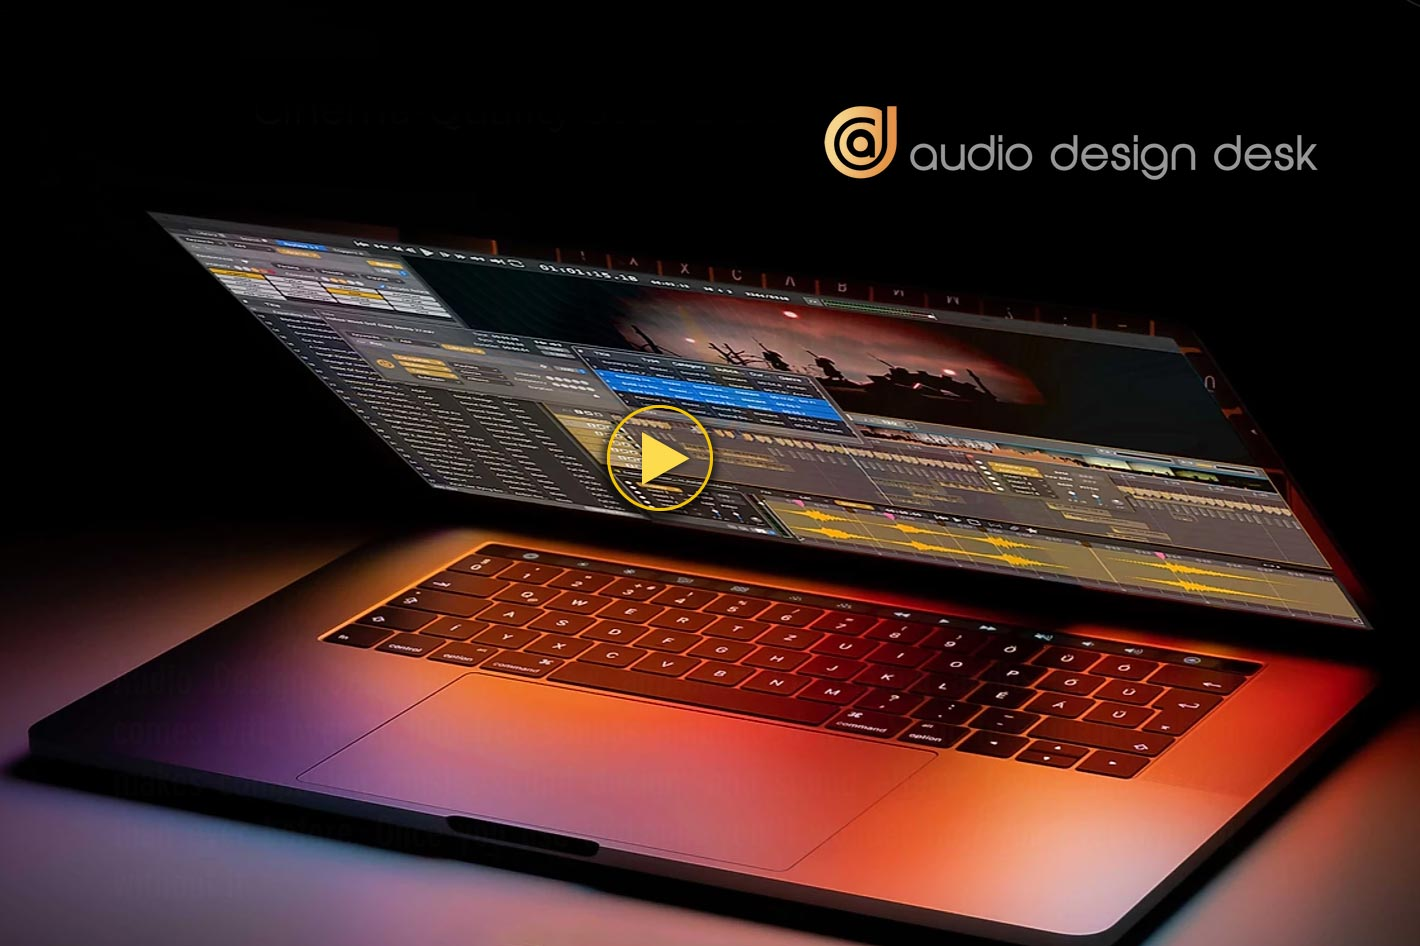 Audio Design Desk Create: a FREE version of the visual storytelling tool